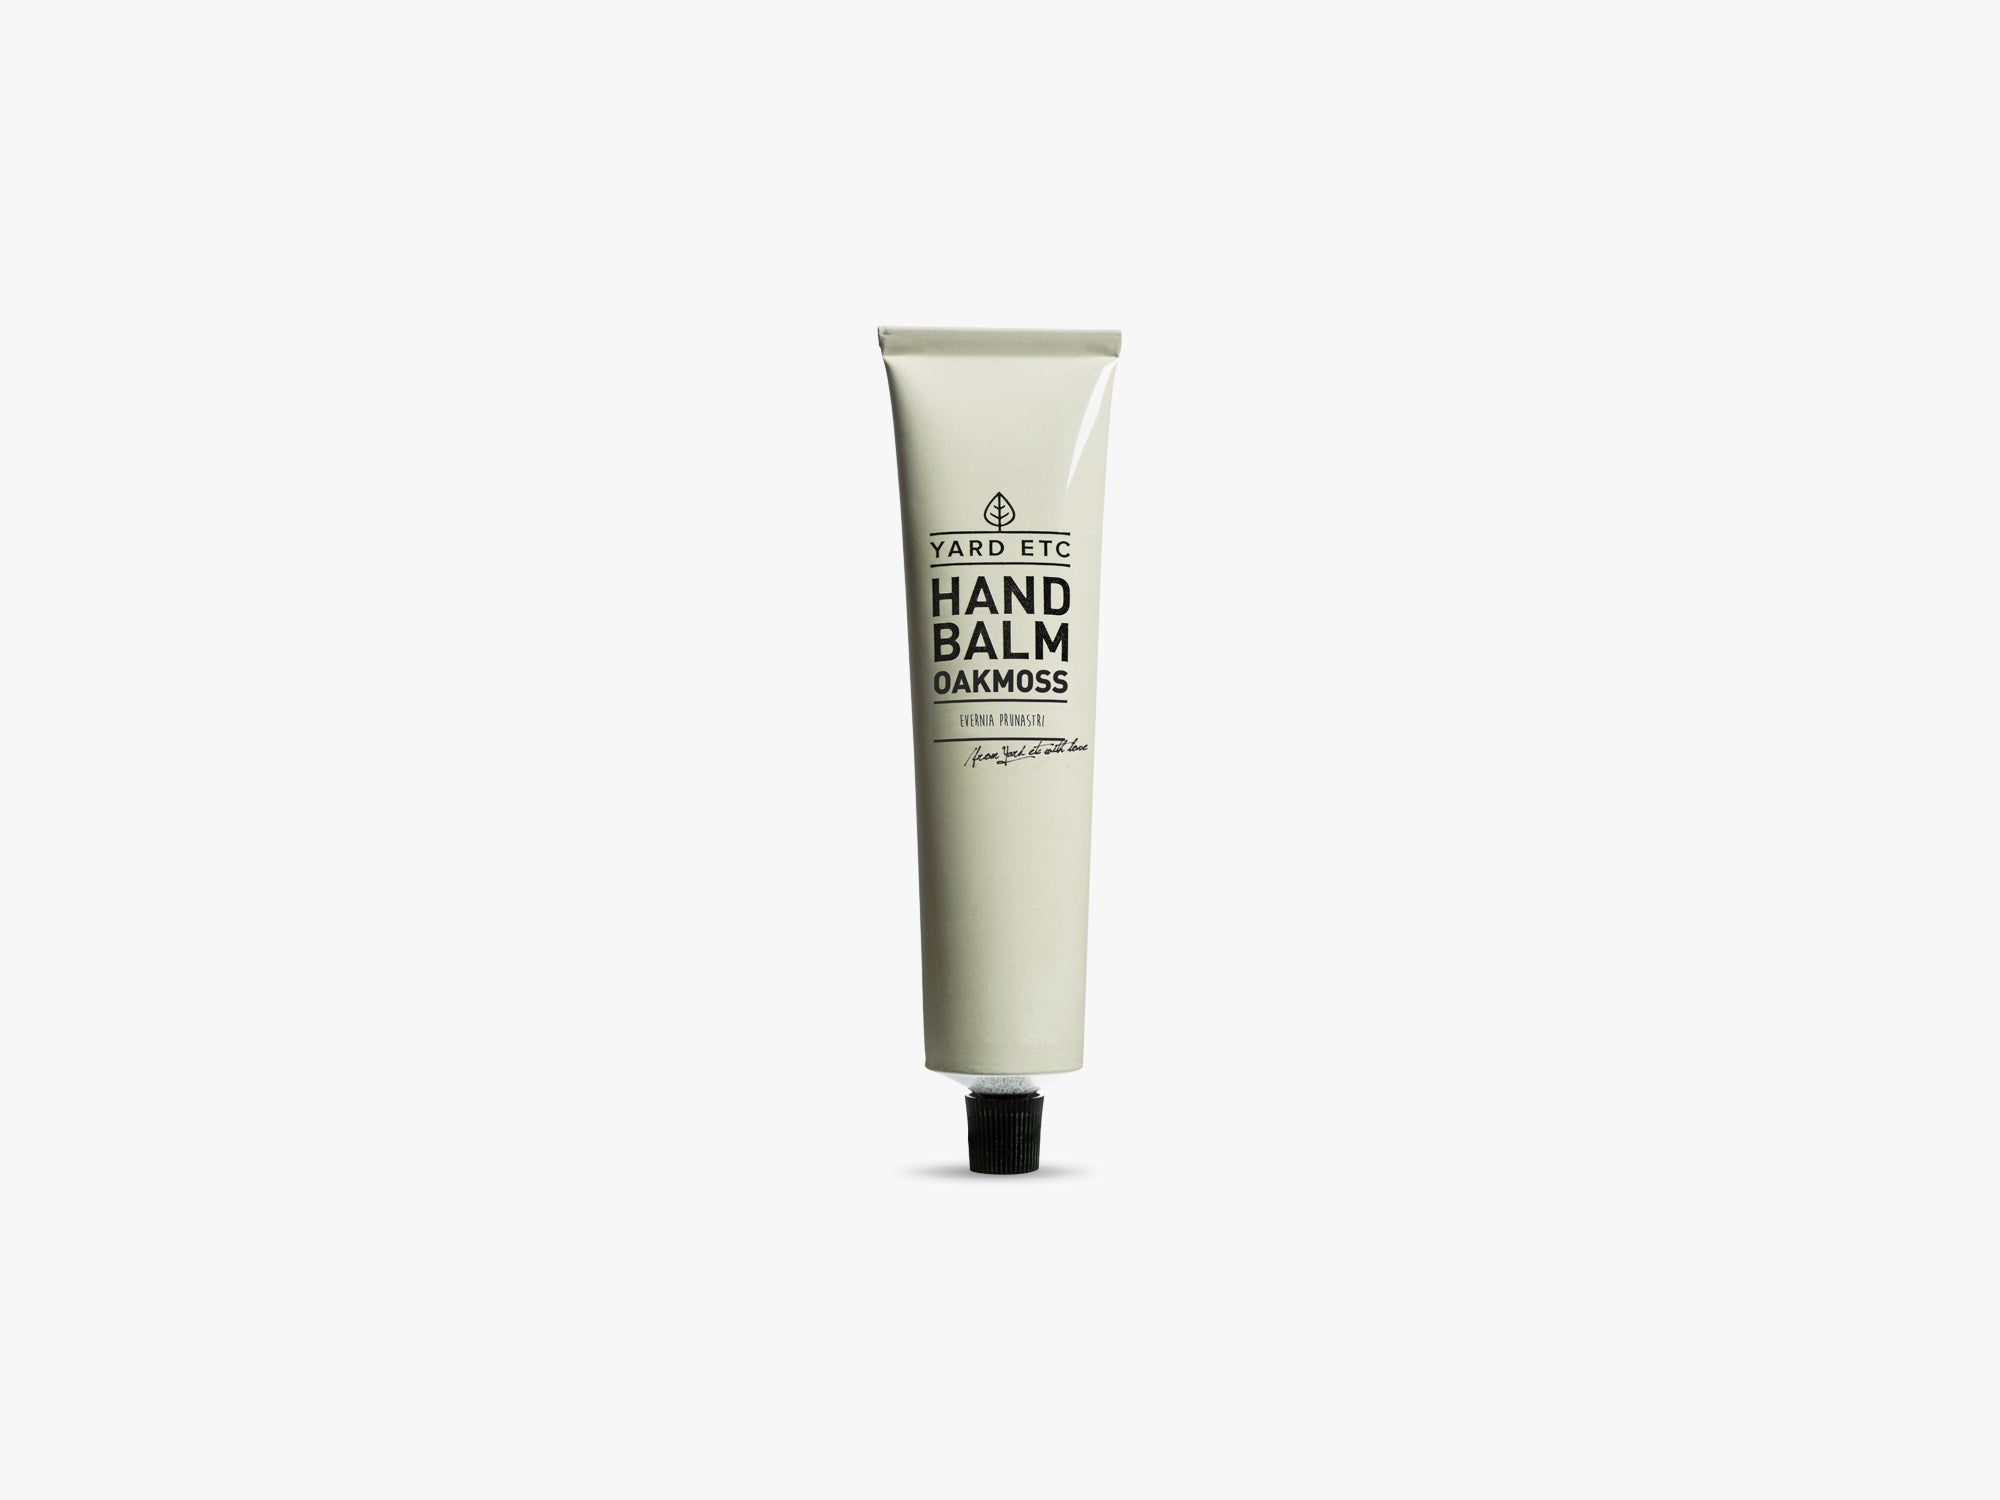 Hand balm - 70ml, Oak moss fra Yard Etc